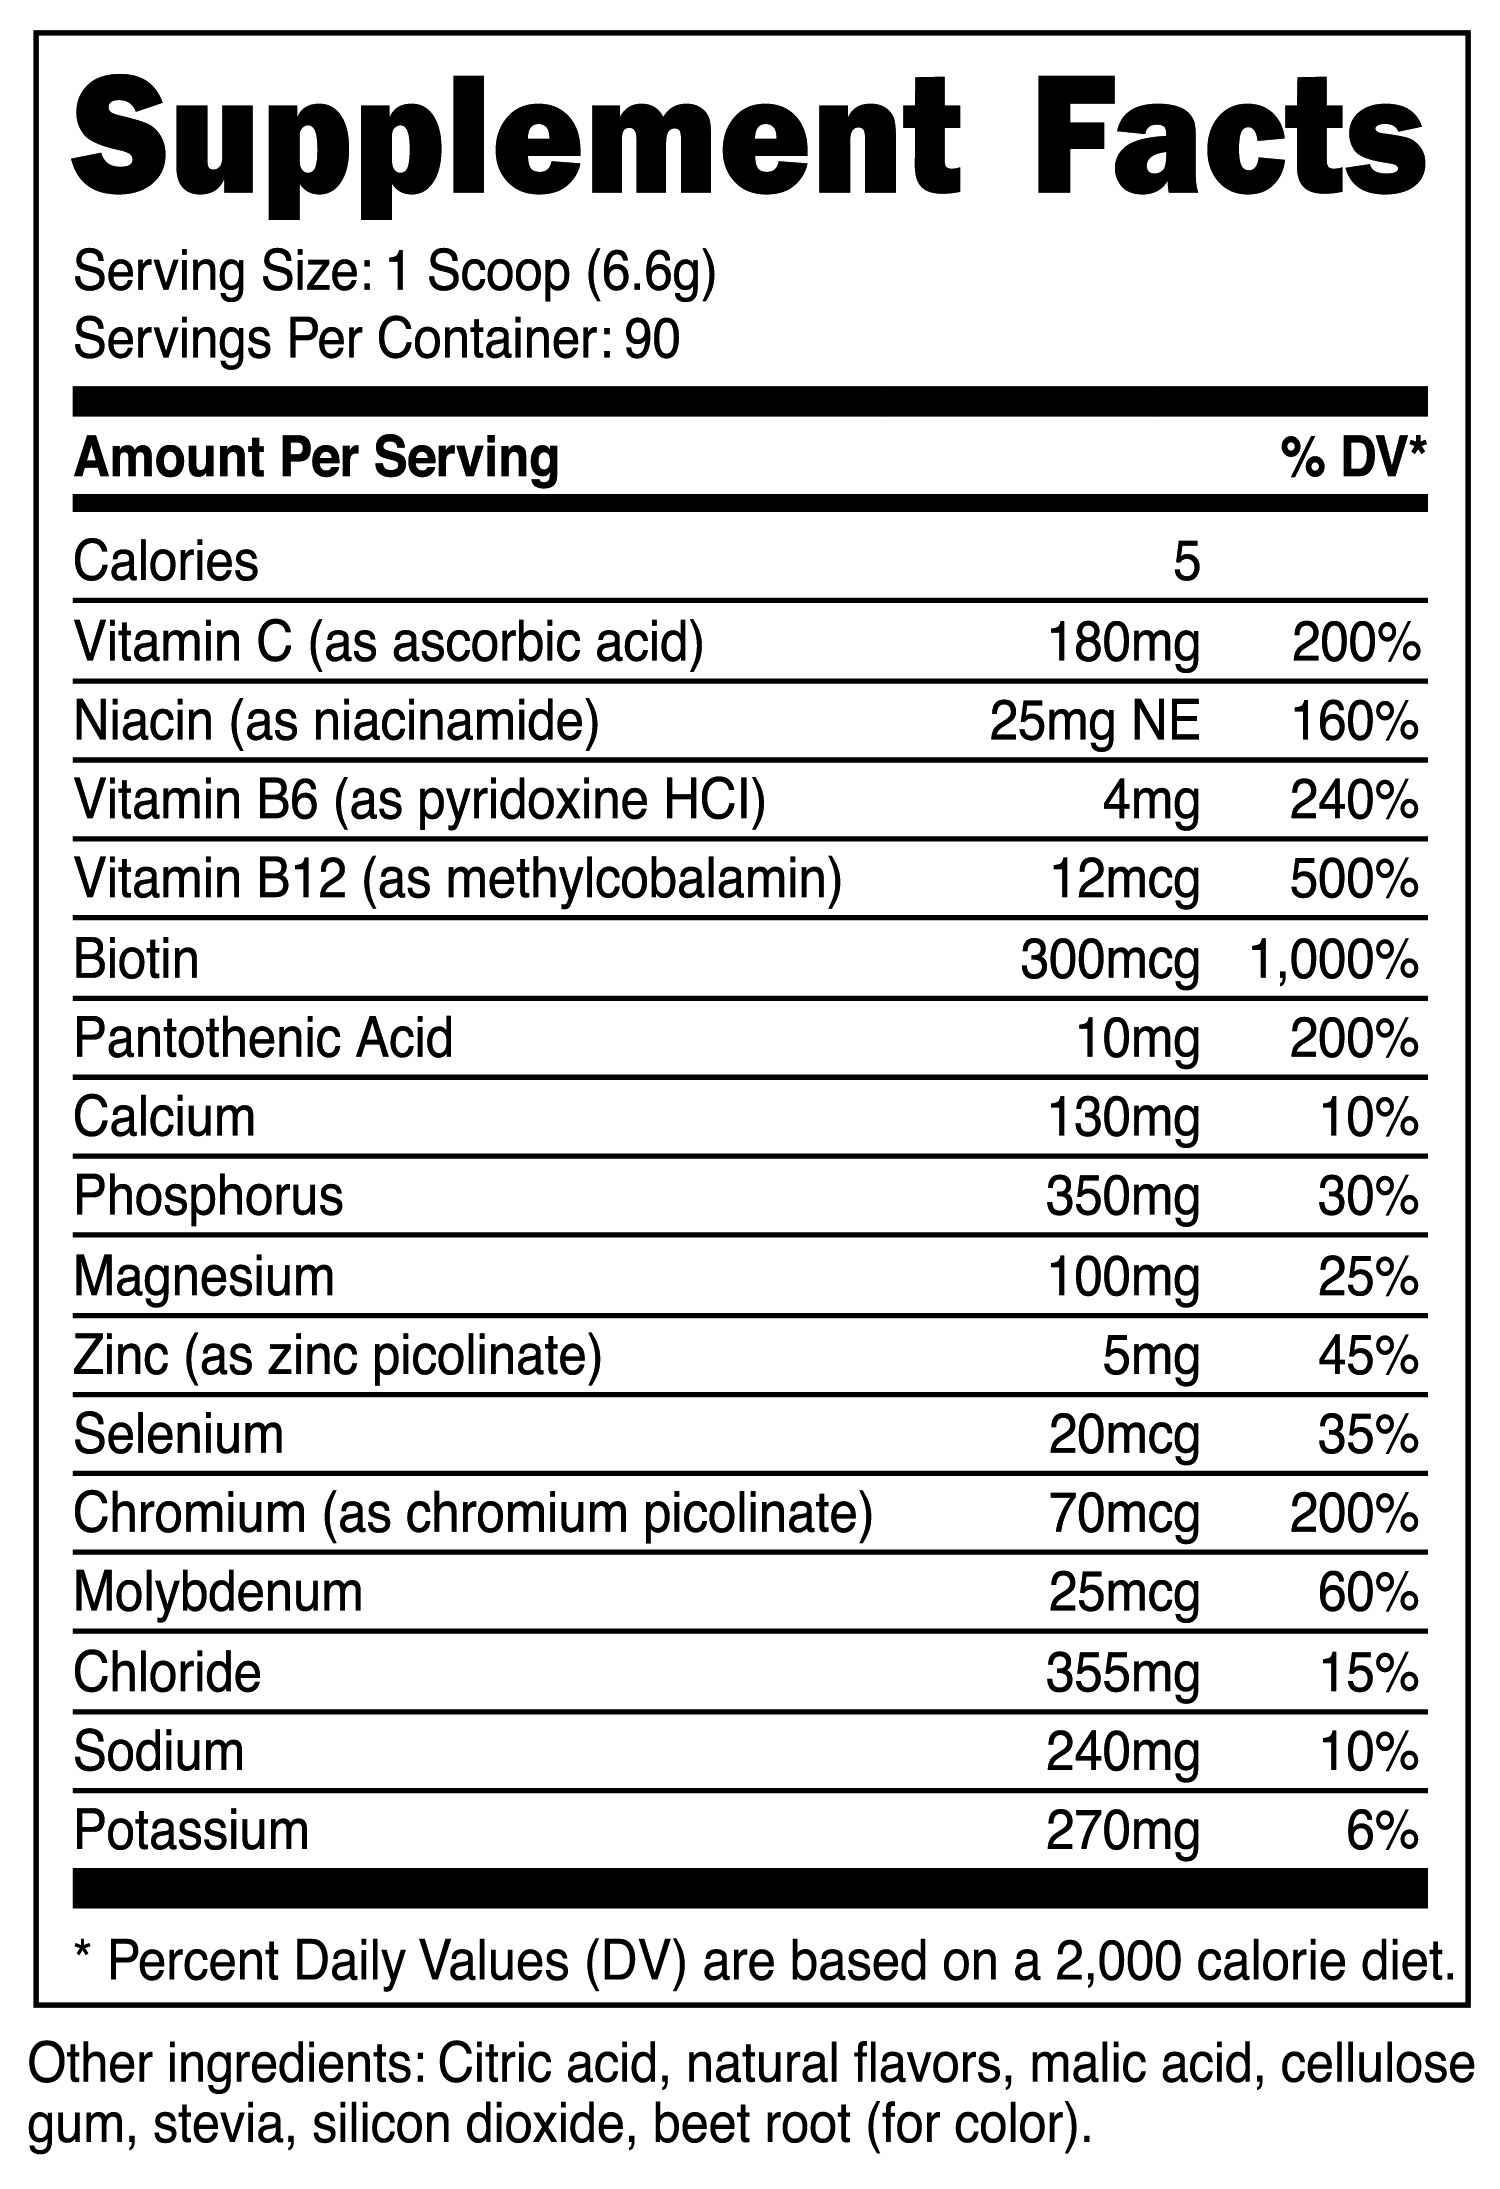 Electrolyte Powder Supplement Facts